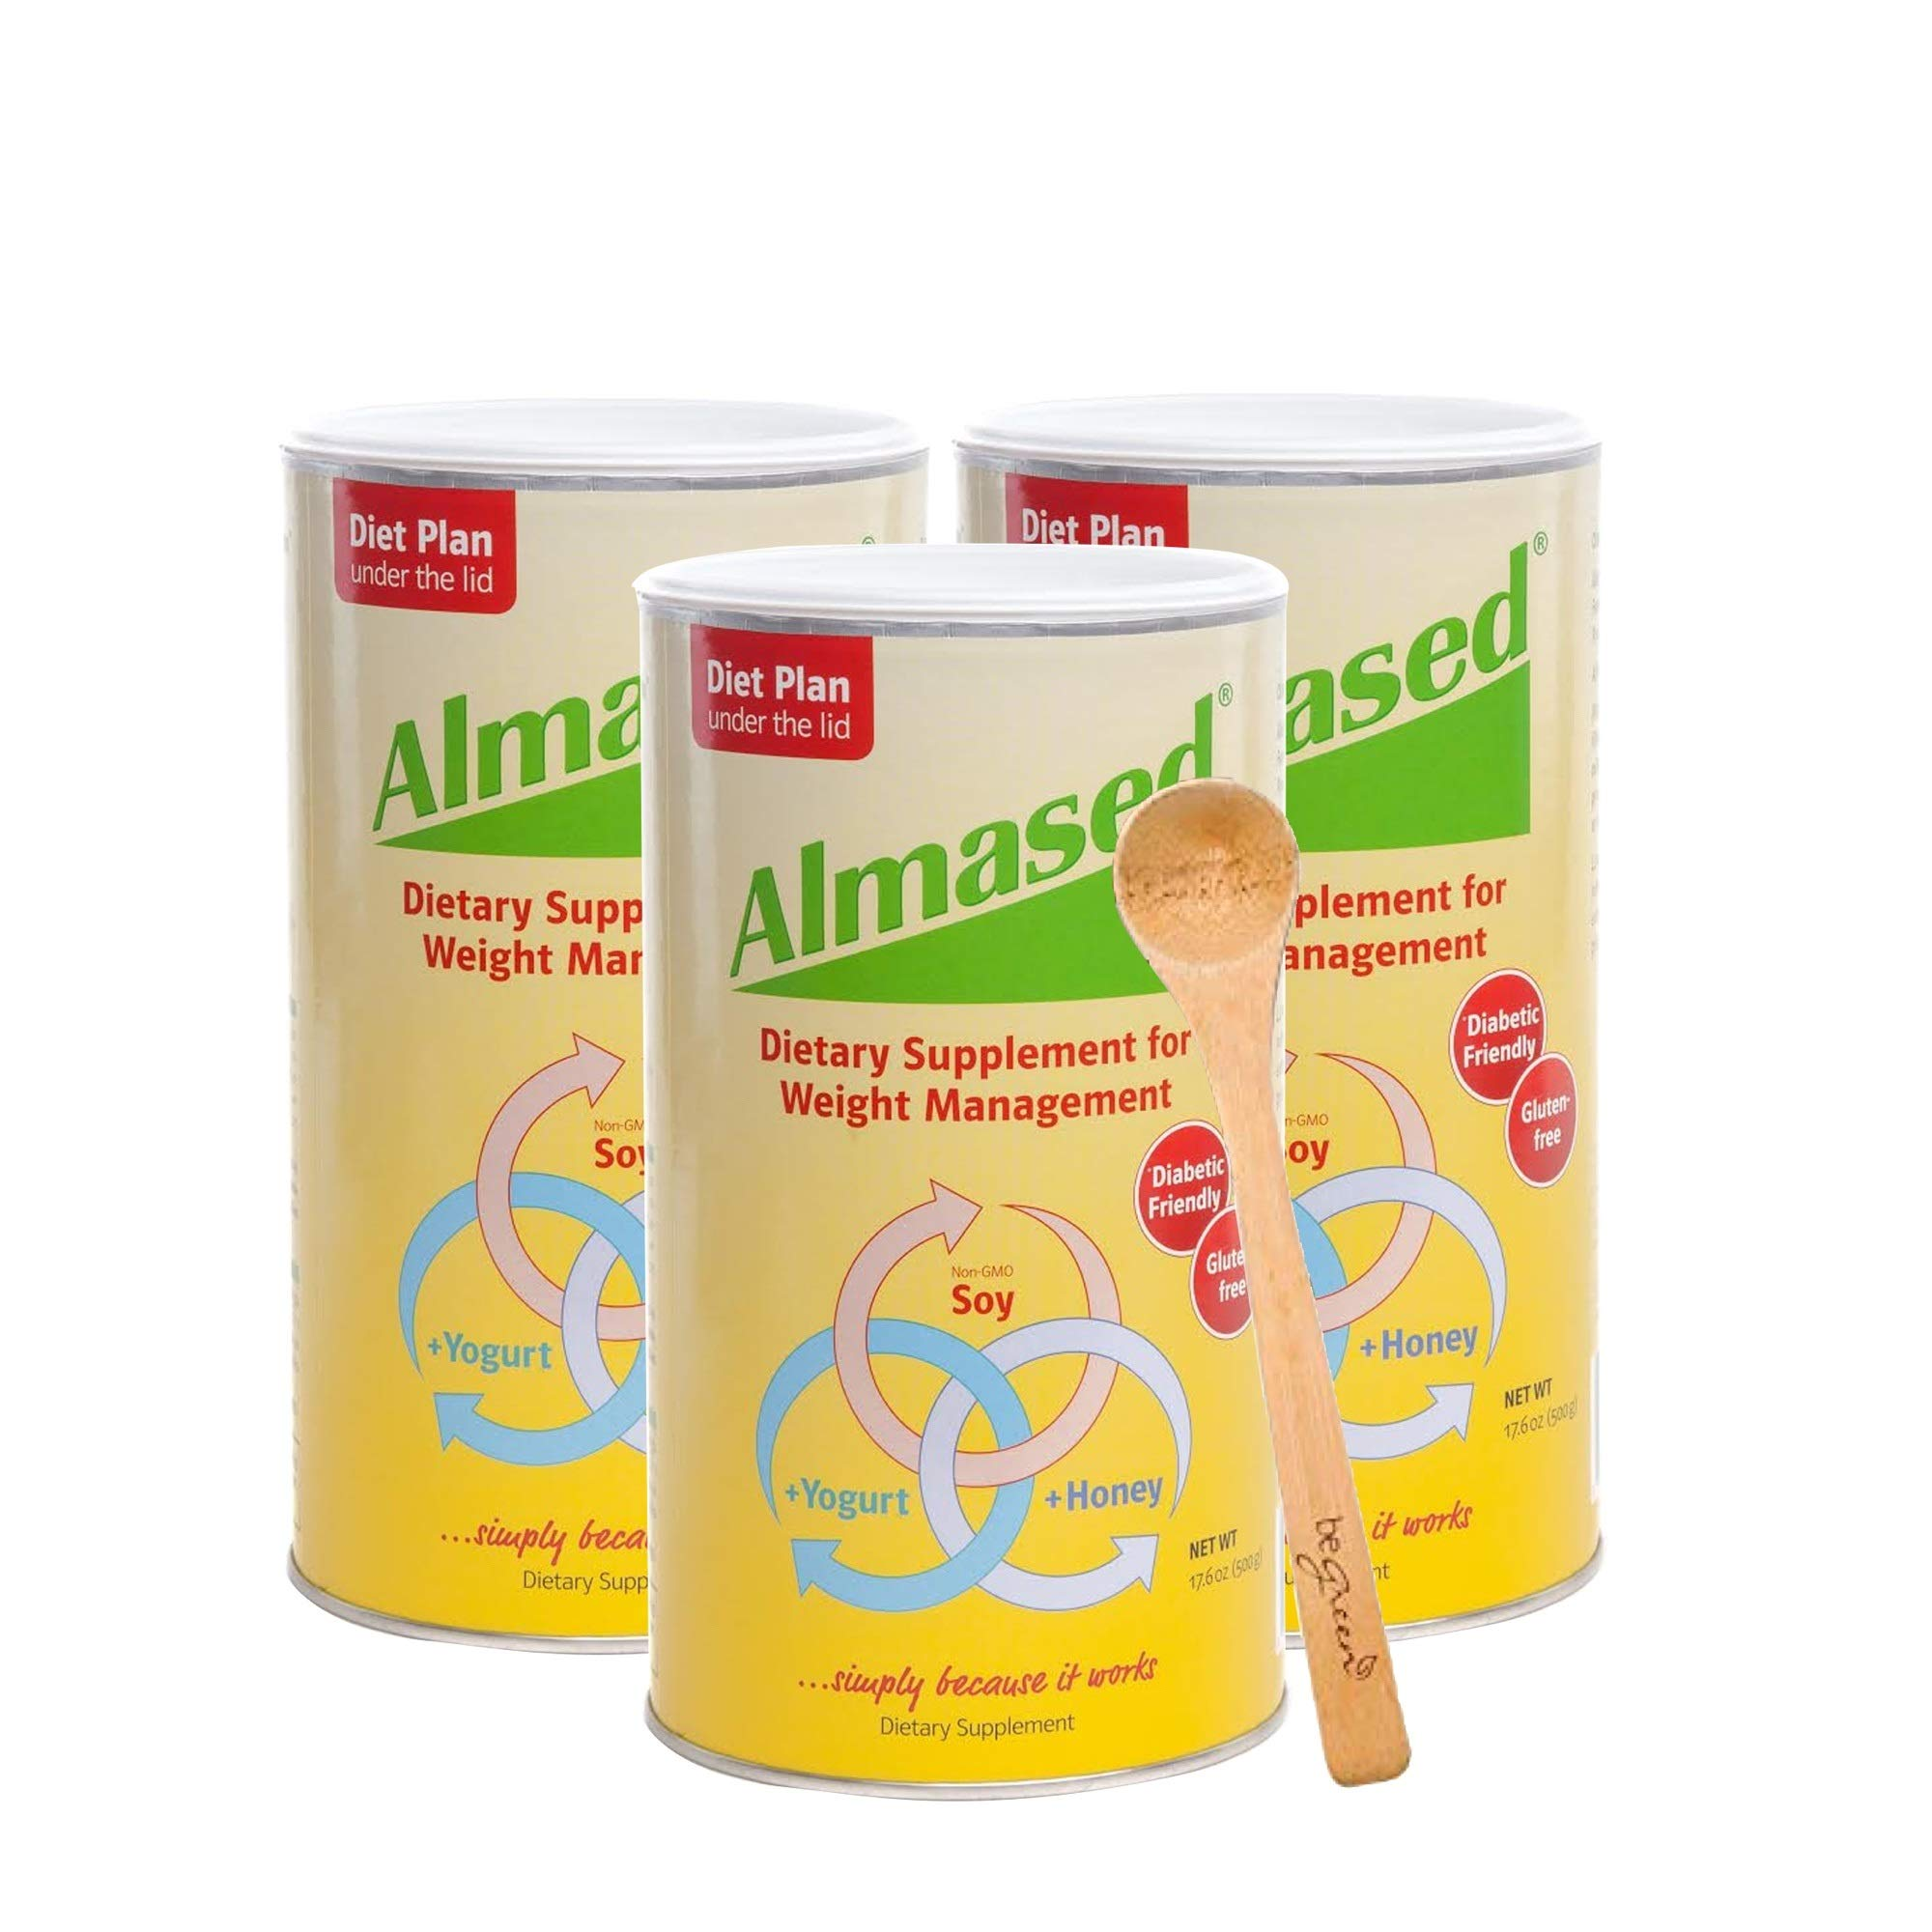 Almased Meal Replacement Shake (3 Pack) with Bonus Bamboo Spoon - 17.6 oz Powder - High Protein Weight Loss Drink, Fat Metabolism Booster - Vegetarian, Gluten Free - 30 Total Servings by Almased (Image #1)